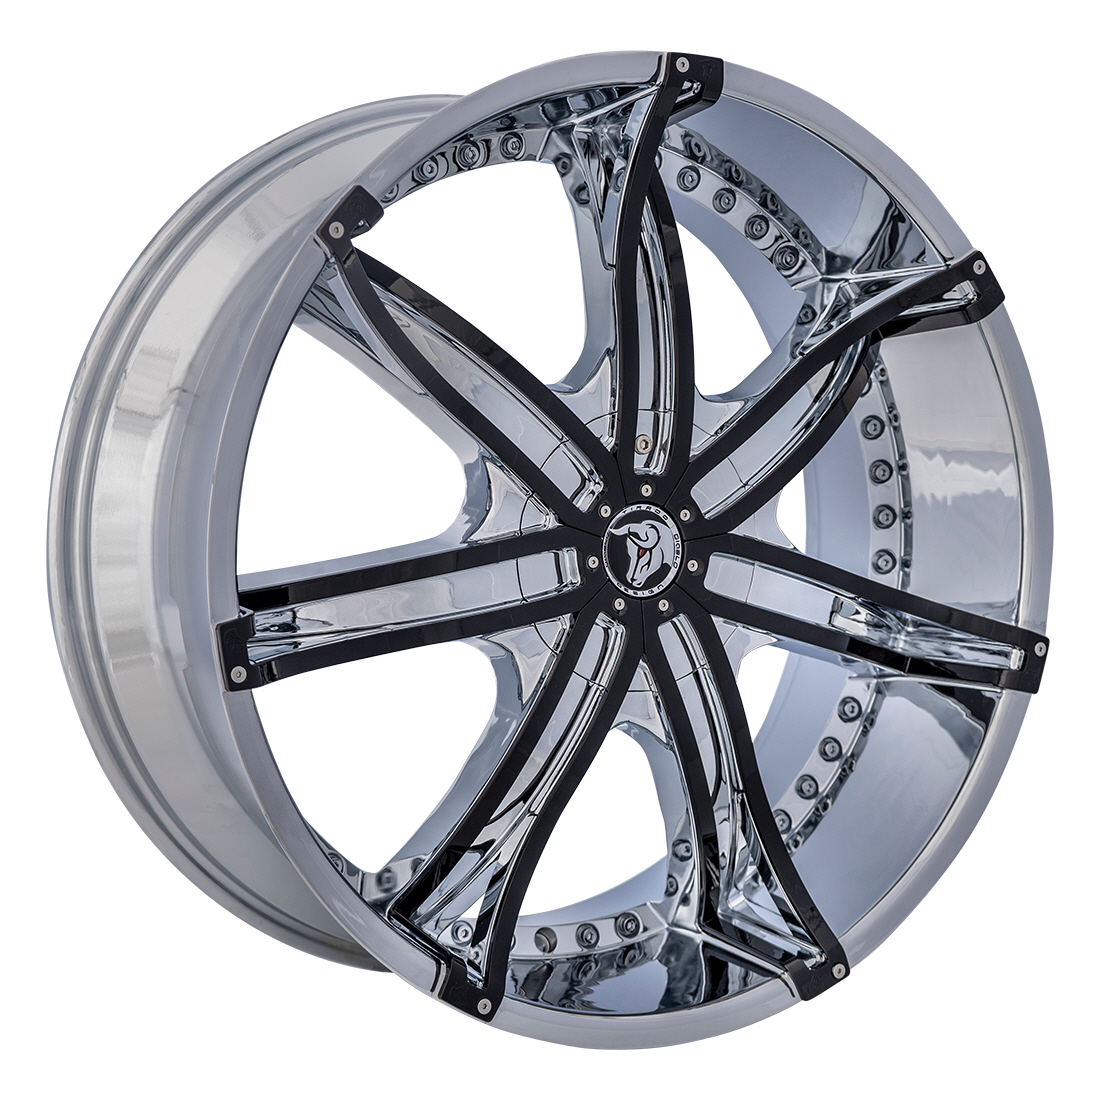 DNA  WHEELS AND RIMS PACKAGES